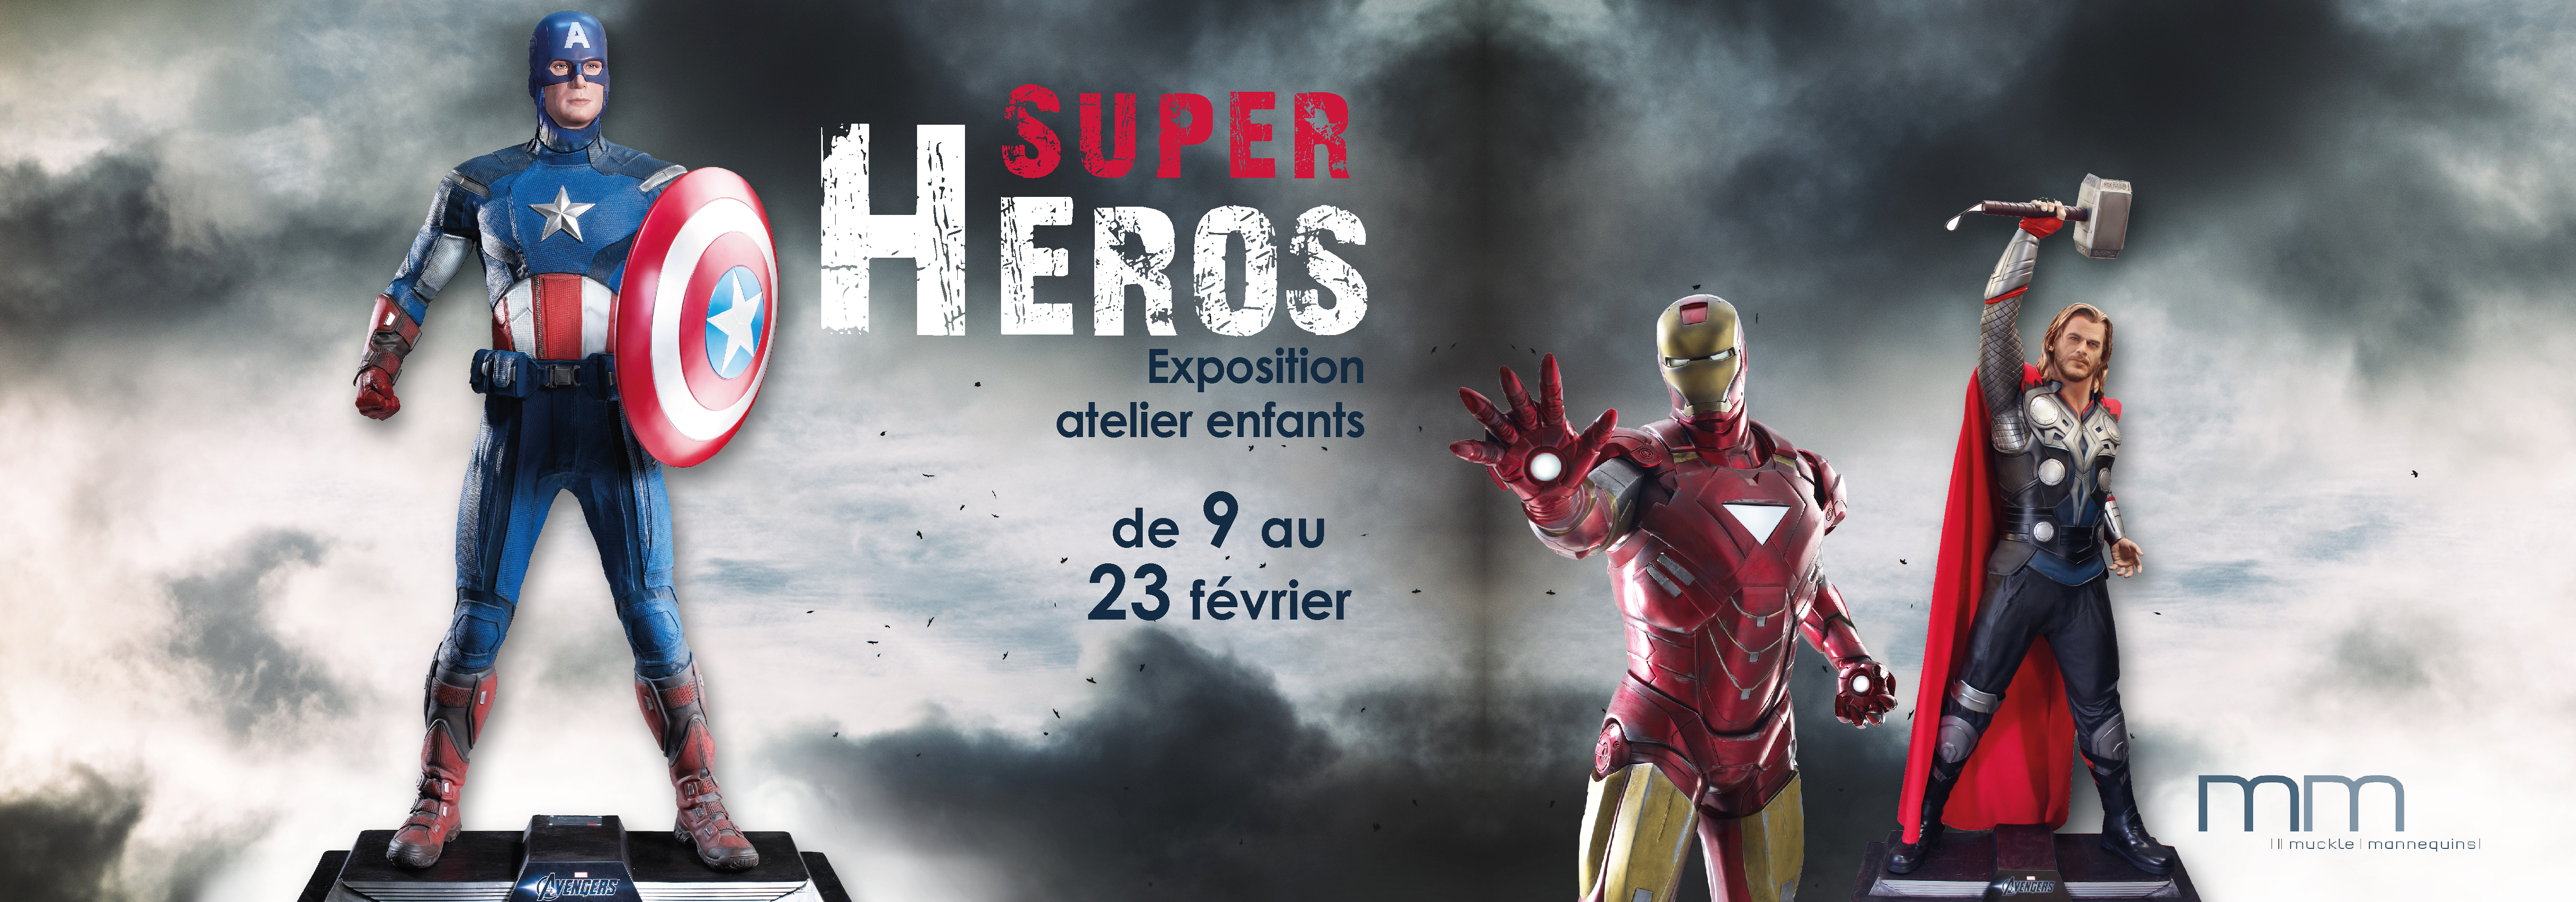 Super Hero_1200x420 web slider